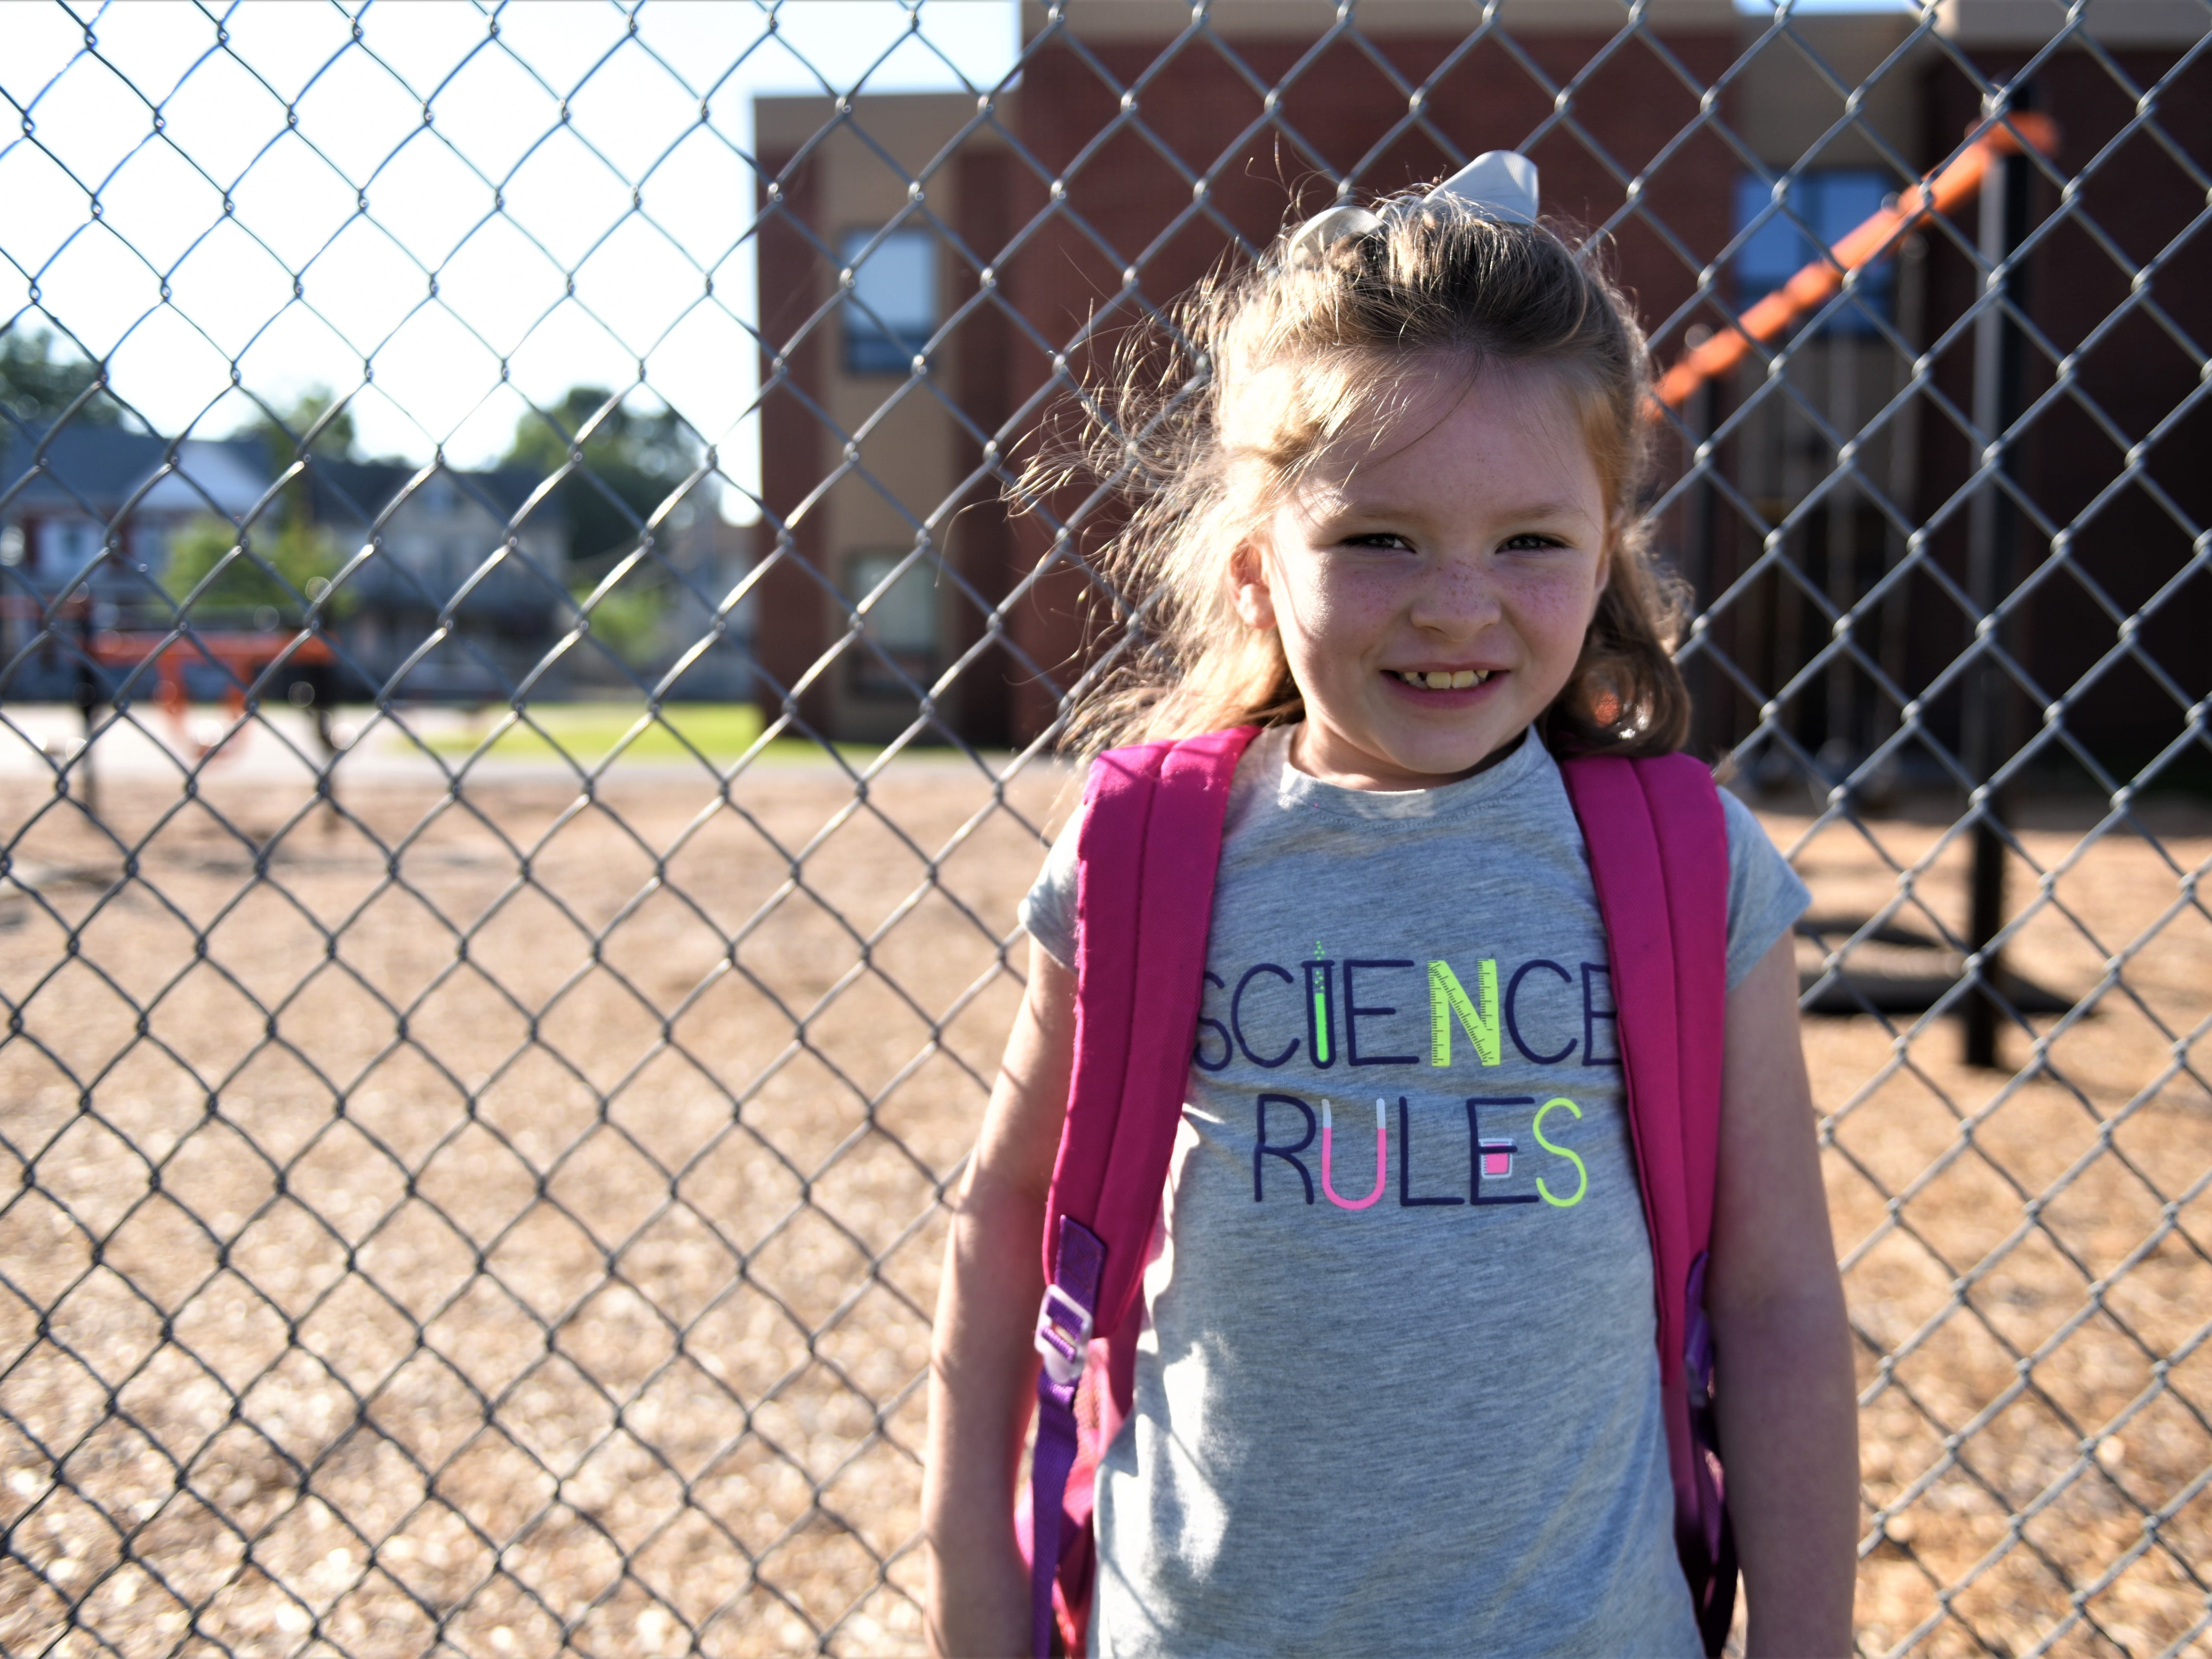 Avery Shirley is excited for science and her first day of first grade at Hanover Street Elementary on Aug. 23.